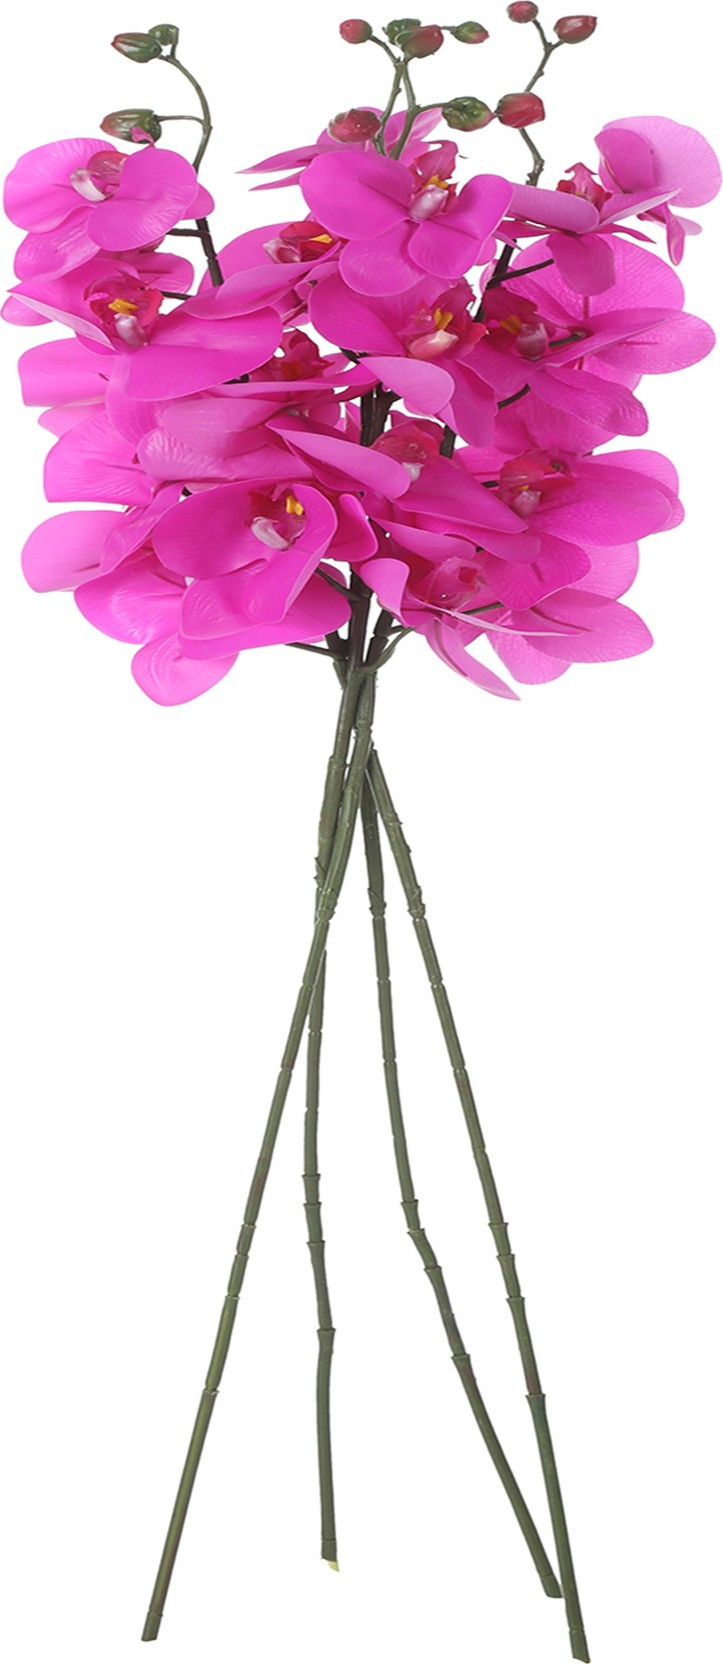 decorative sticks for vases india of uberlyfe real touch purple orchids artificial flower price in india for share